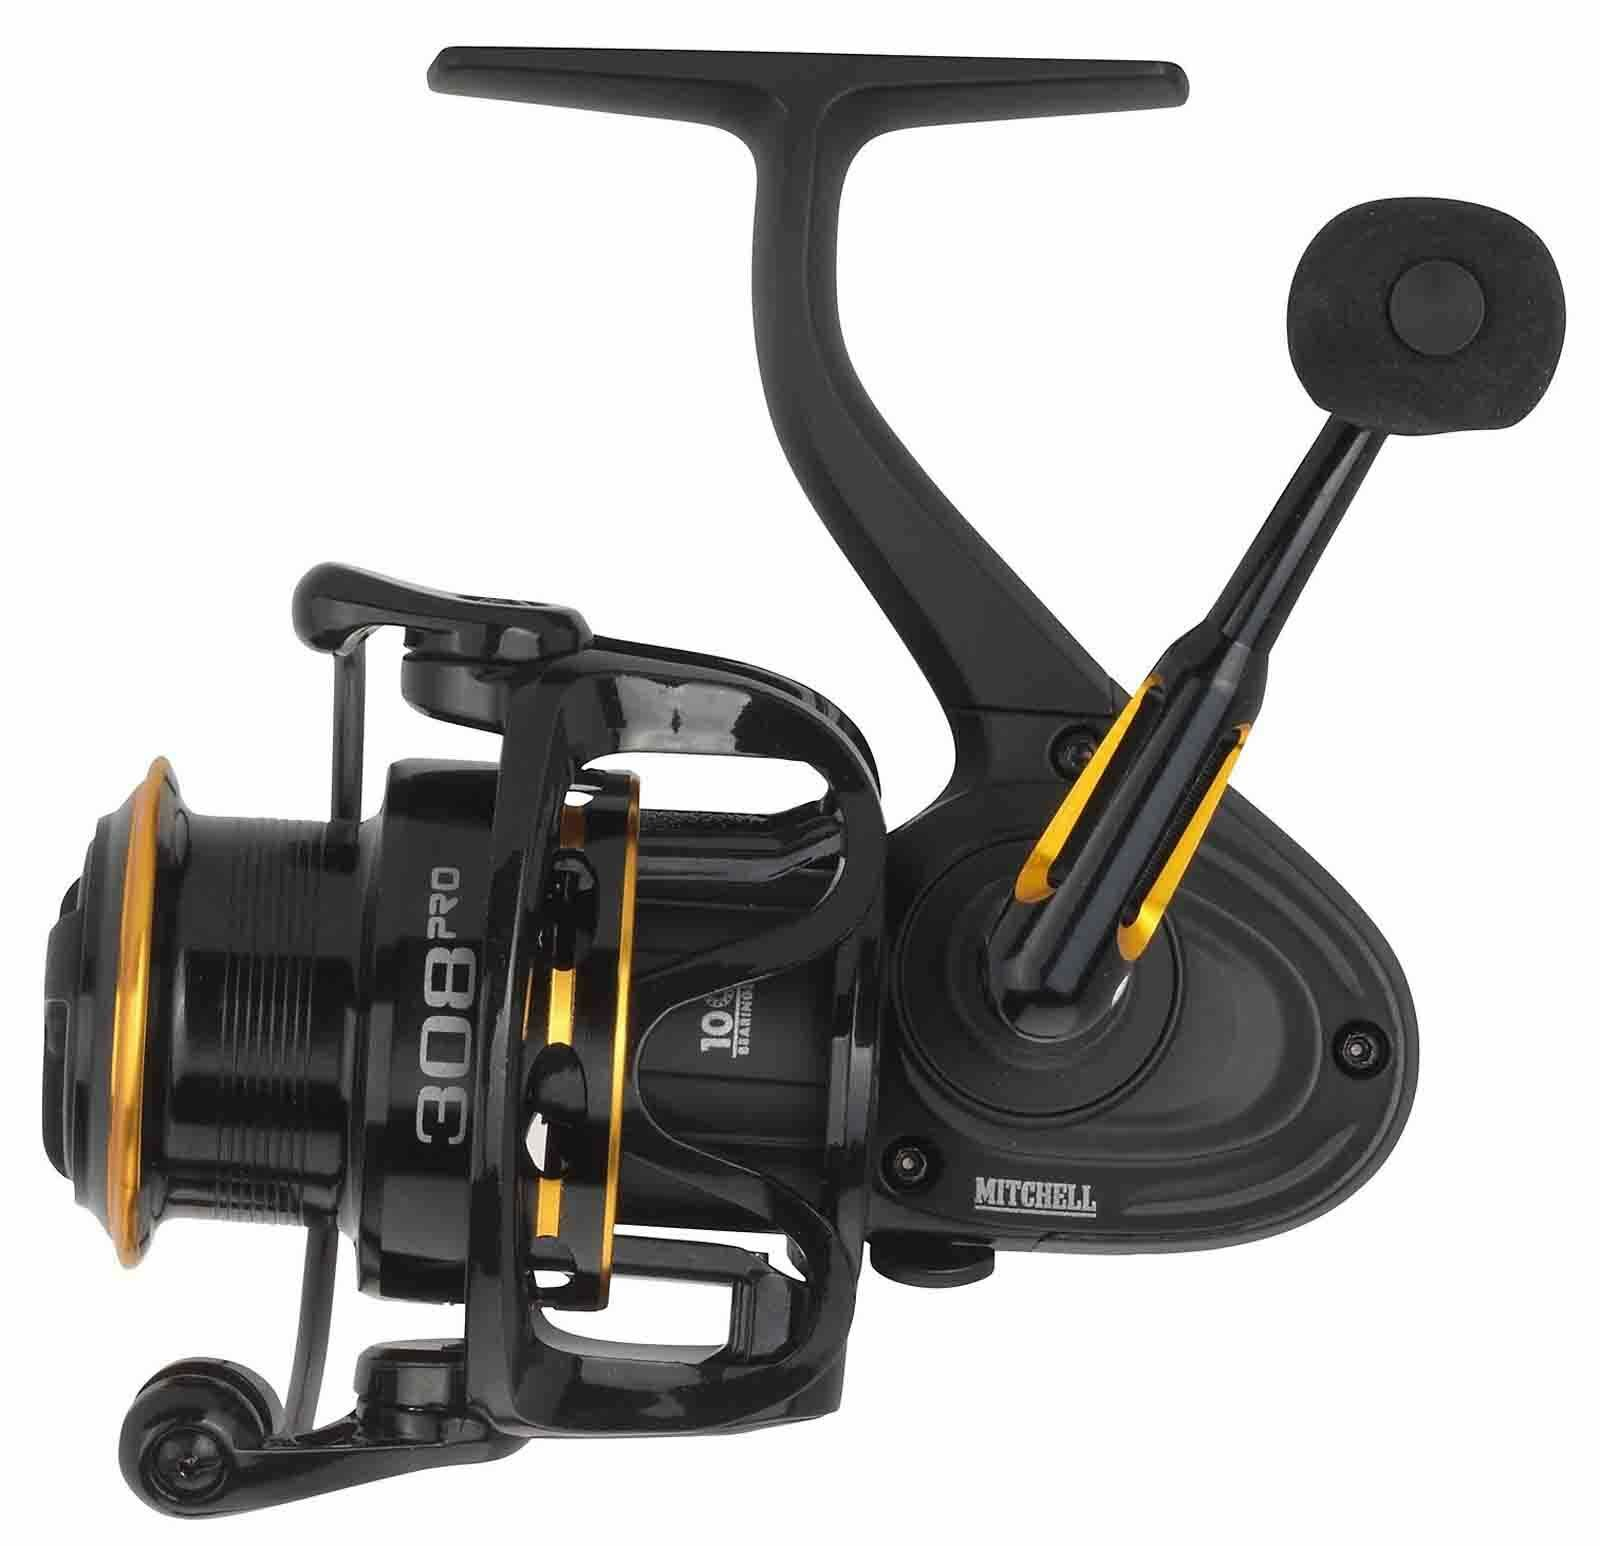 Mitchell New 300 & 308 PRO FD Spinning Fixed Spool Spin Fishing Reel - All Größes